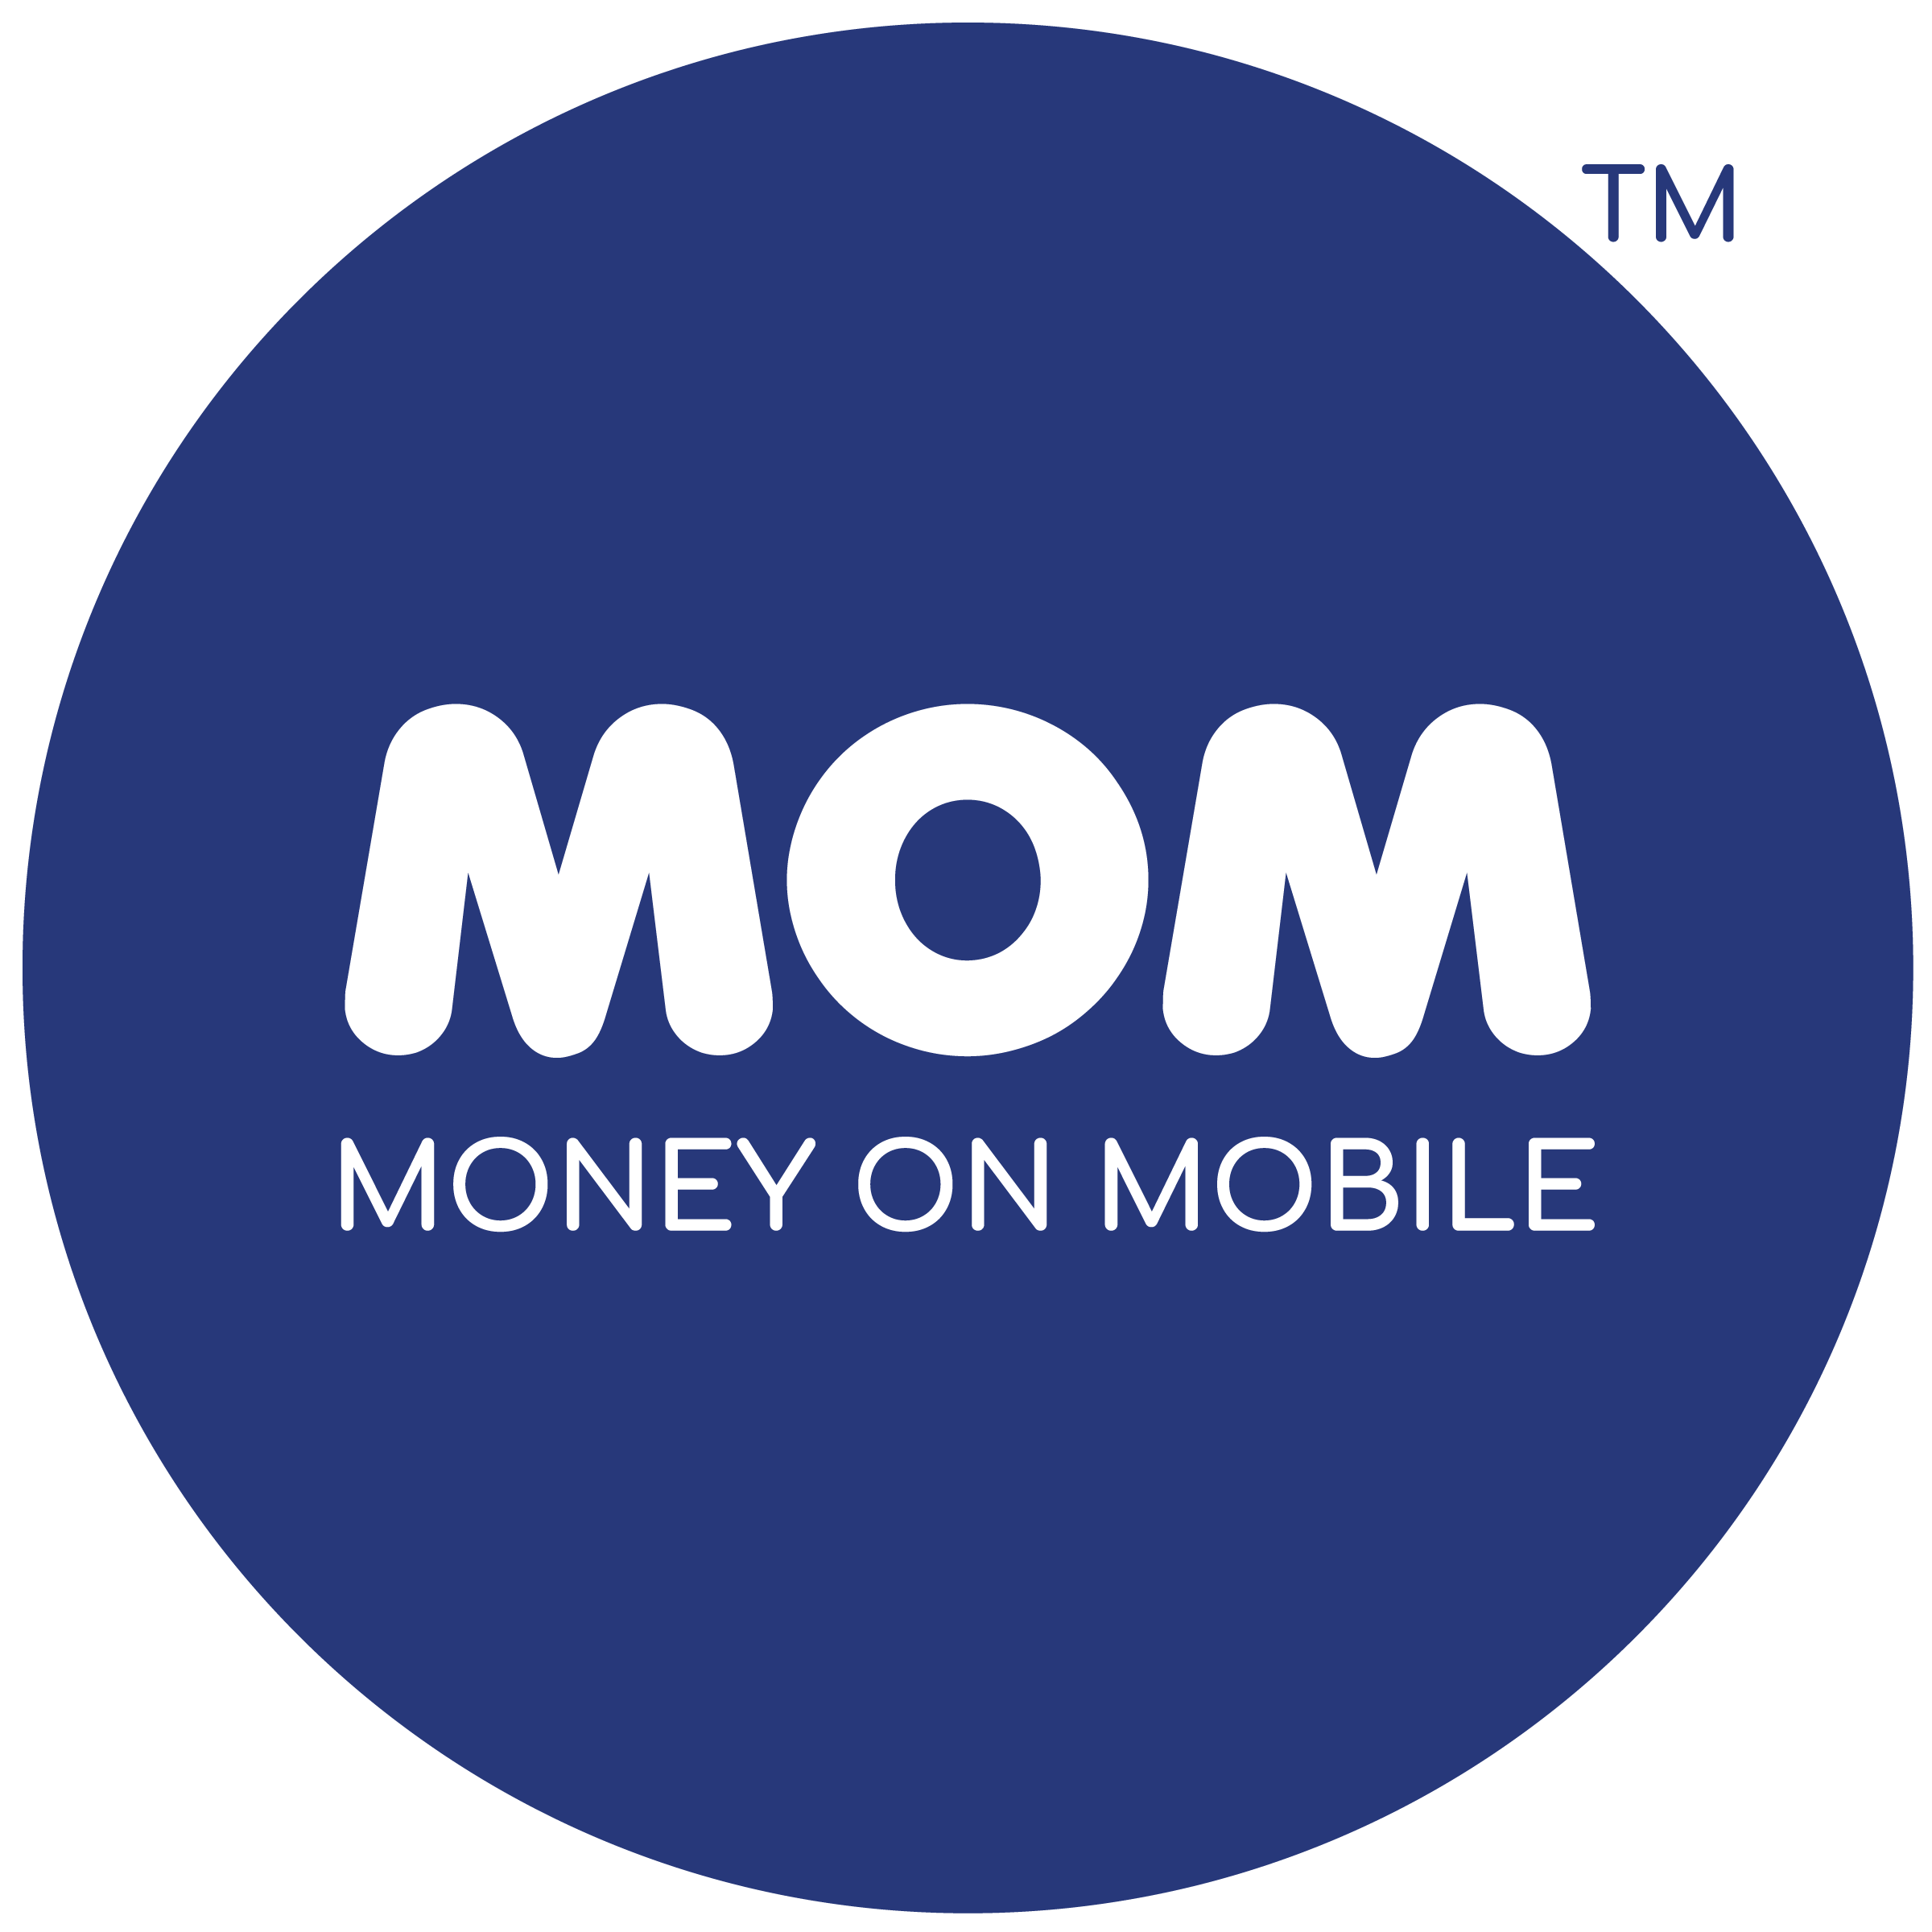 MoneyOnMobile